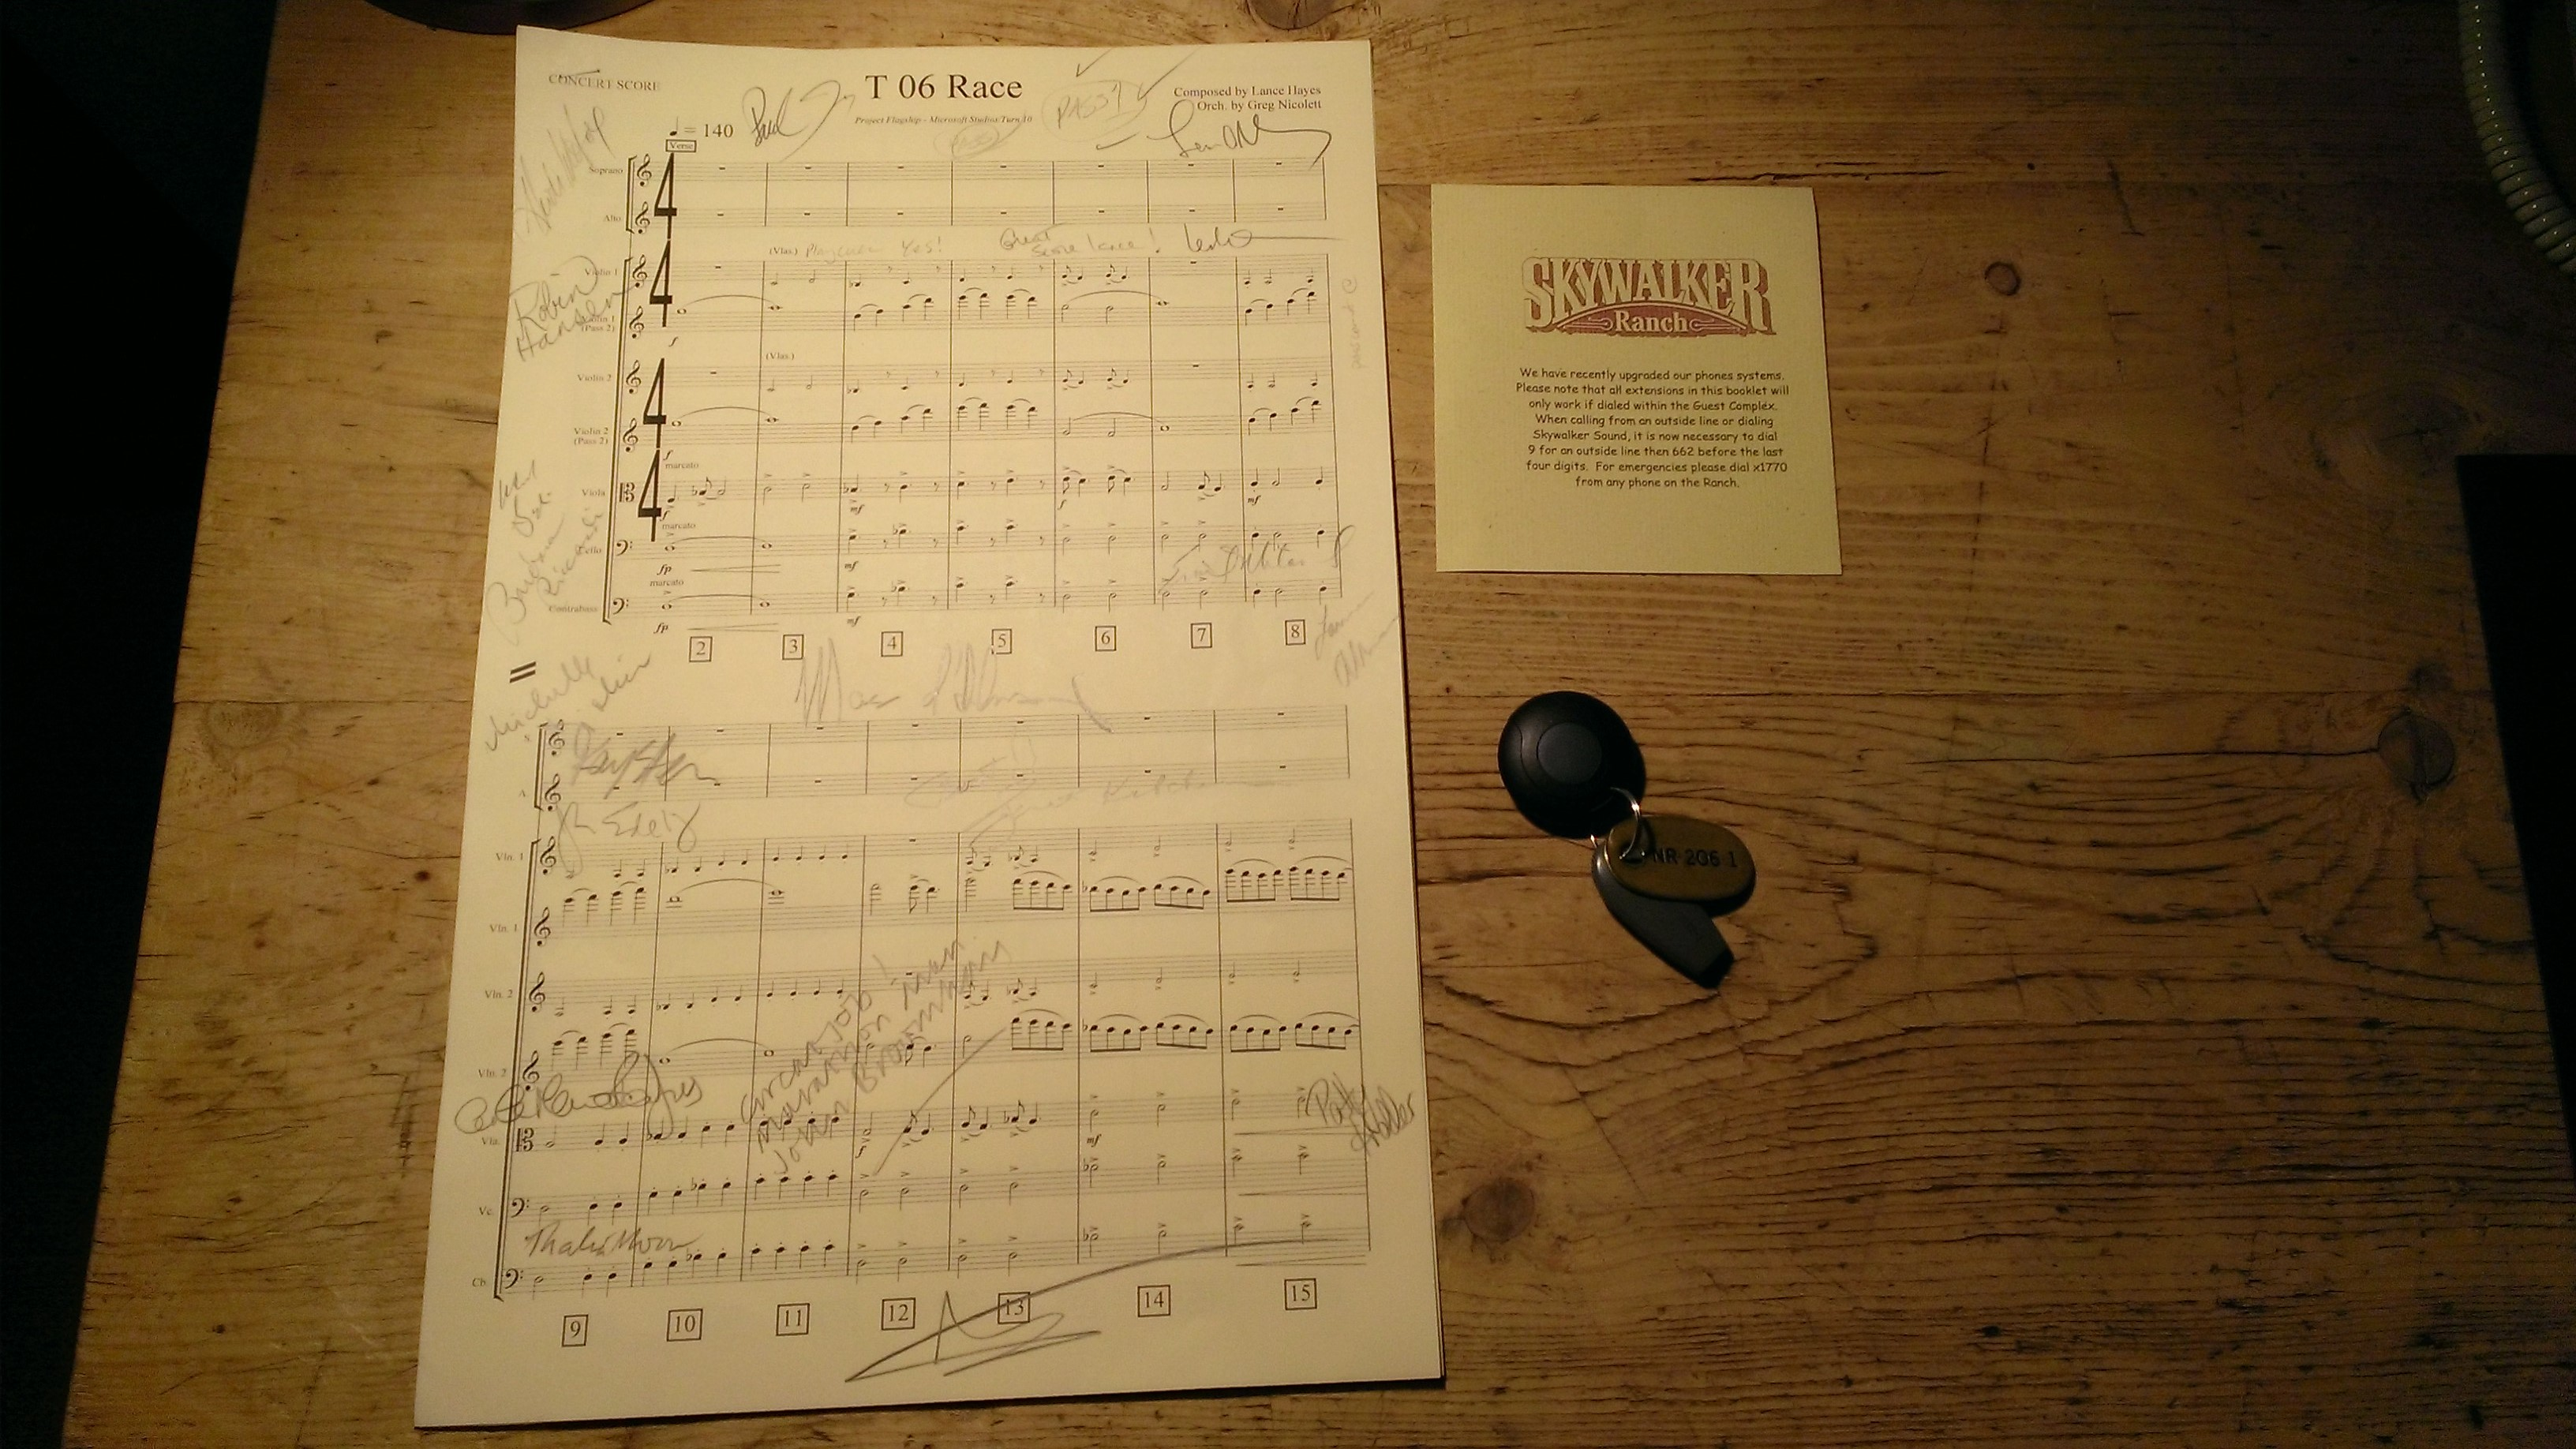 image of conductor's score from Forza Motorsport 5